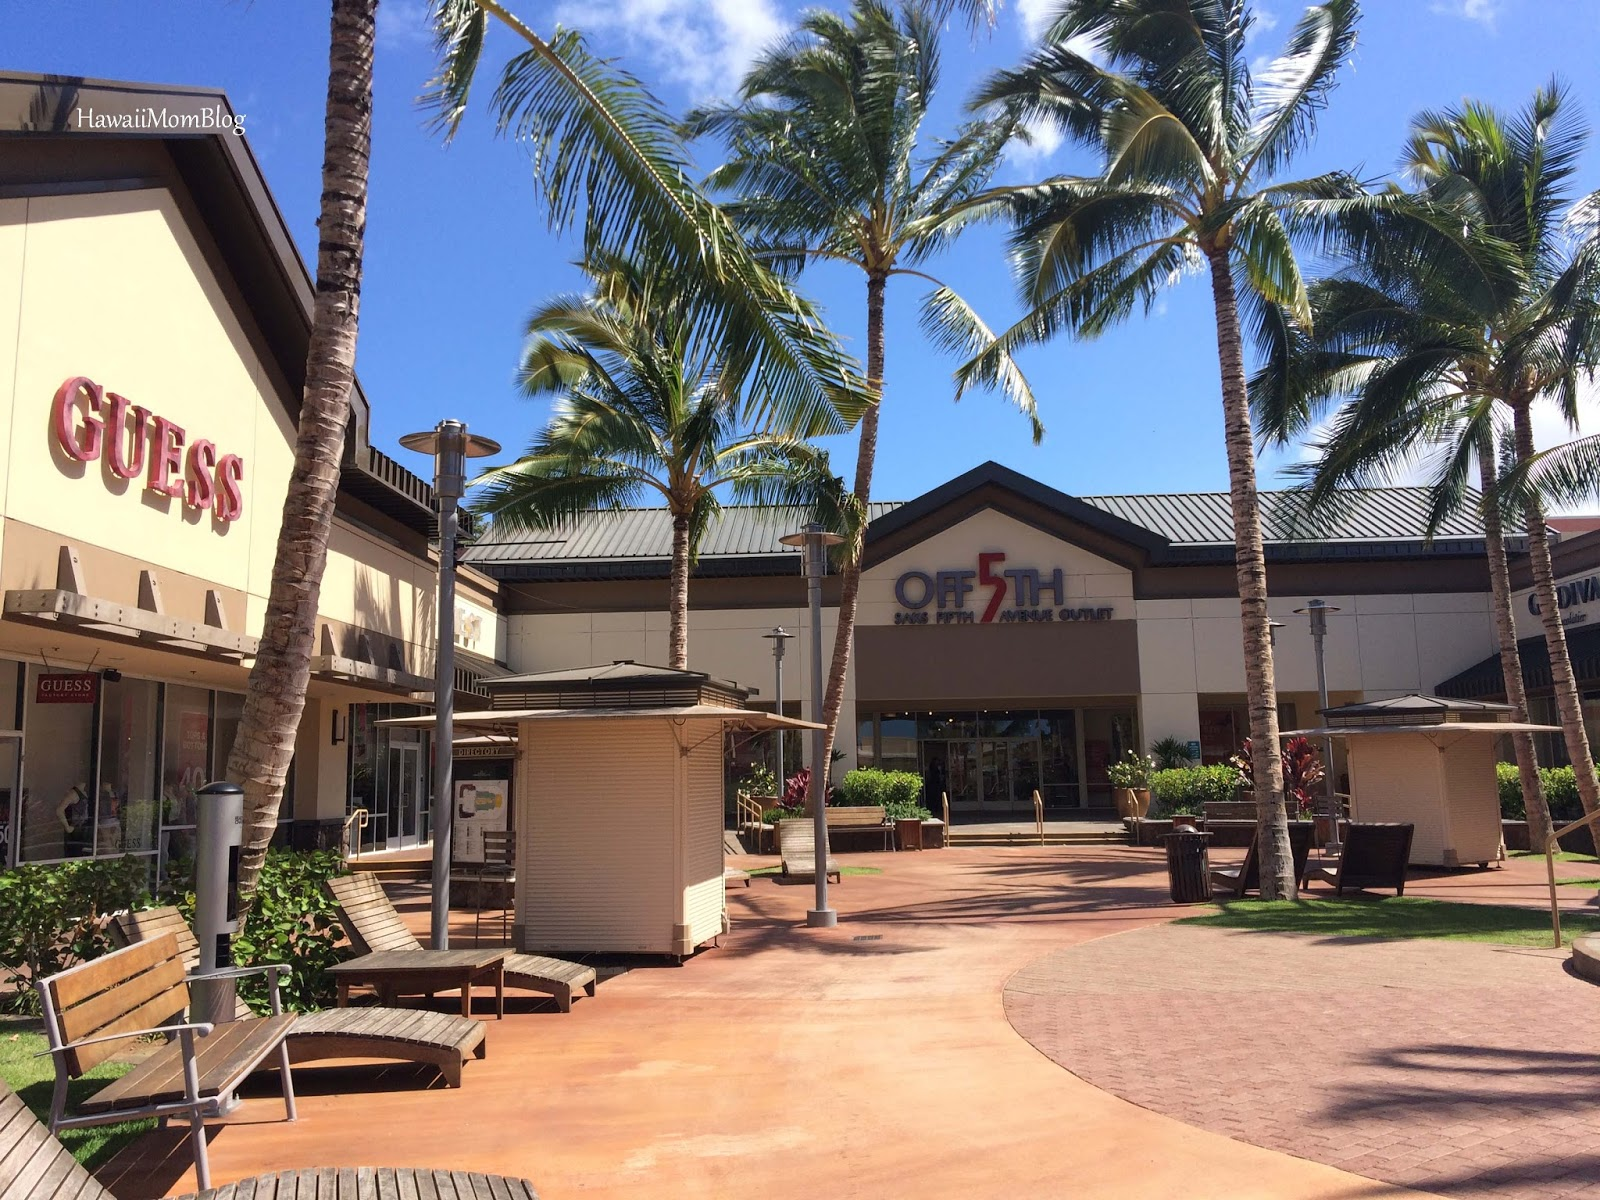 Waikele Premium Outlets is located approximately 15 miles (30 minutes) northwest of THE MODERN HONOLULU, and transportation is available by taxi, shuttle and even a narrated tour encompassing Oahu's central plain.